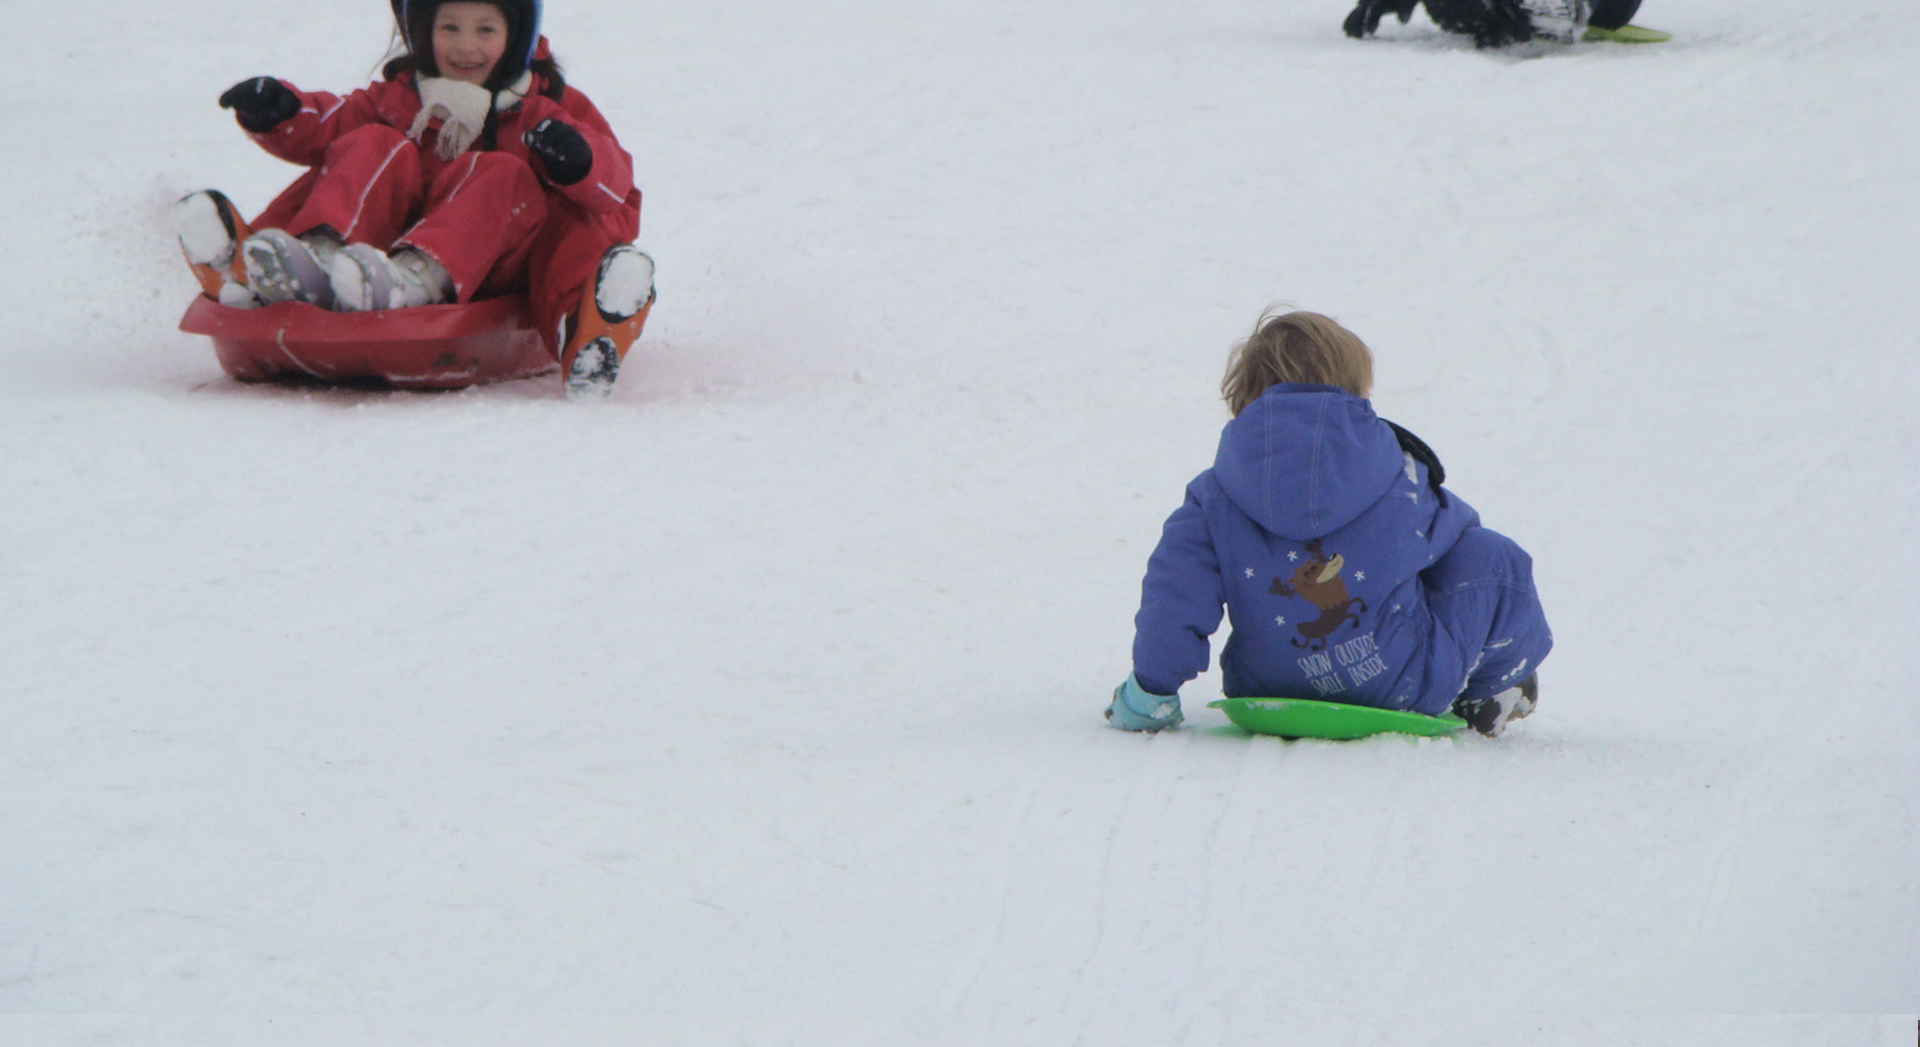 Sledging with the Family